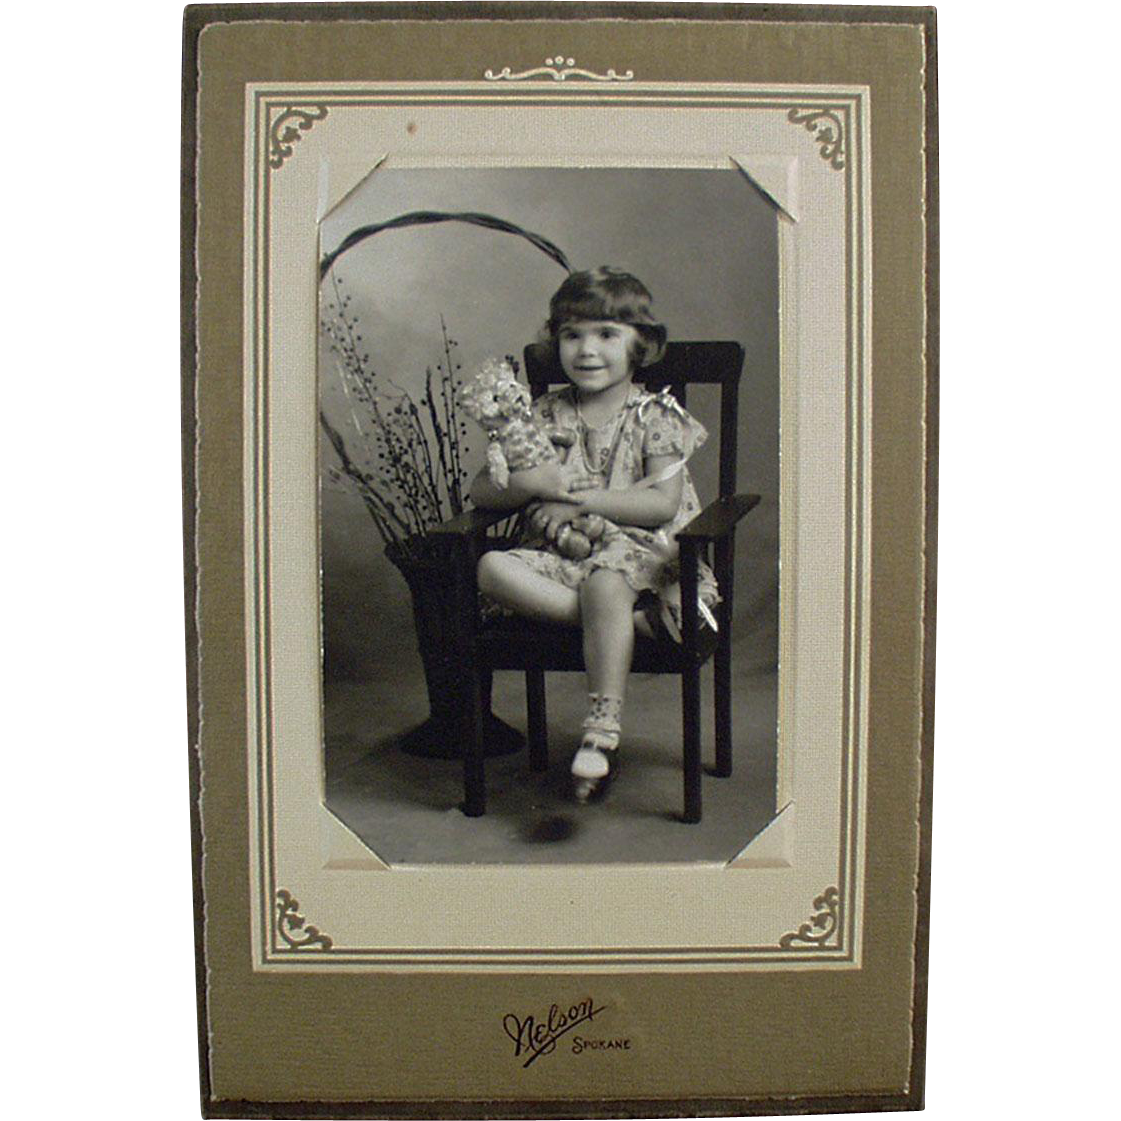 Vintage Photograph in Easel Frame - Little Girl with Old Teddy Bear